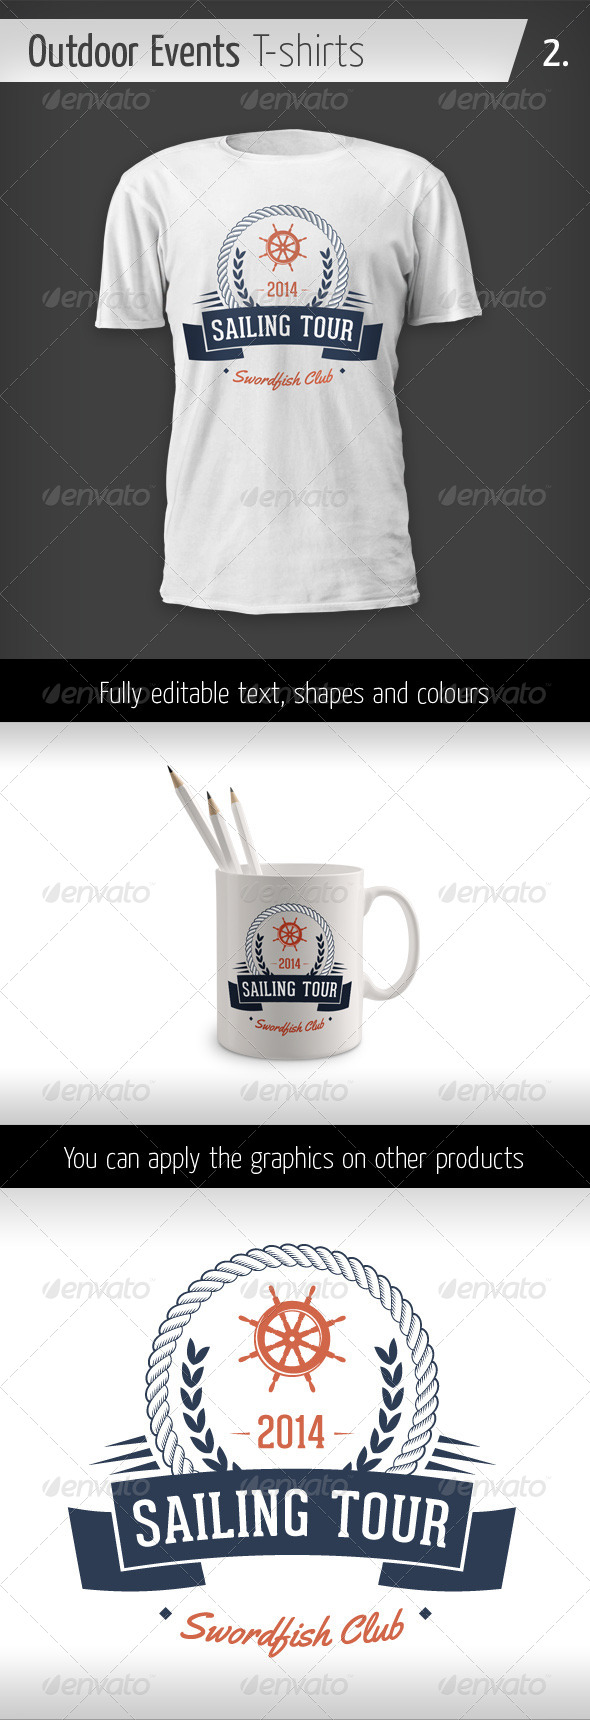 Outdoor Events T-shirts - Sailing Tour - Events T-Shirts